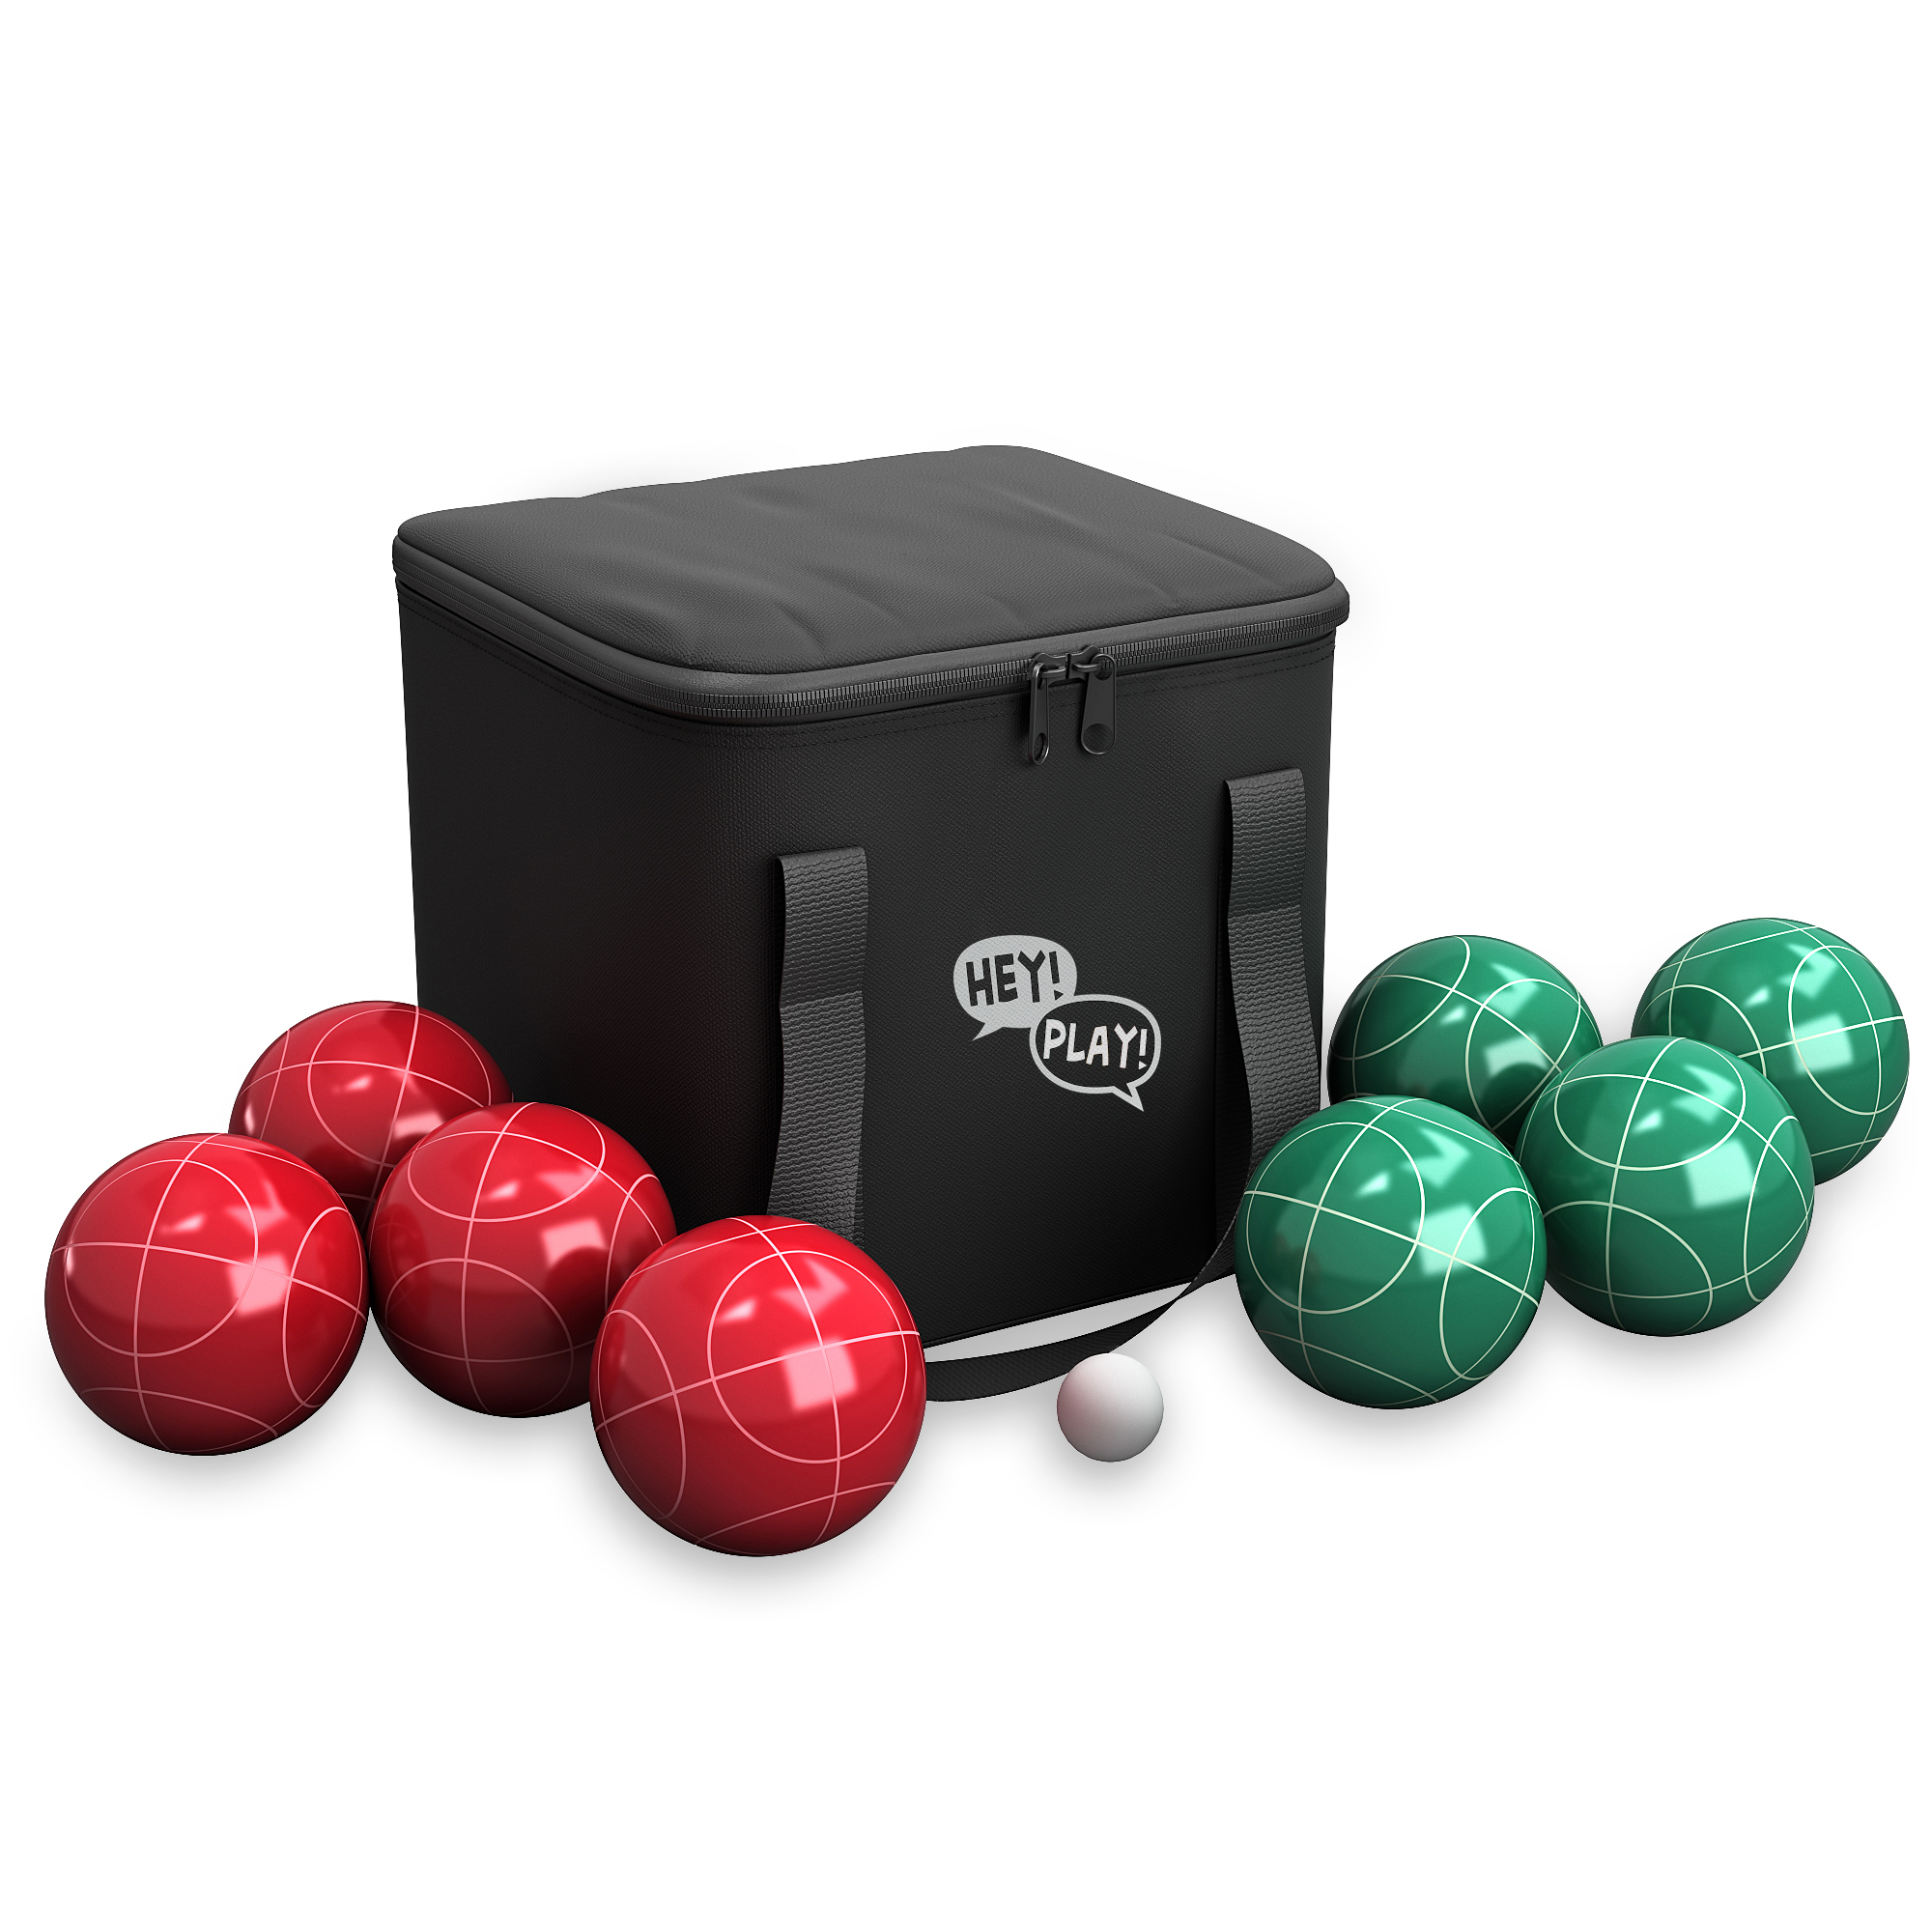 Bocce Ball Set- Outdoor Family Bocce Game for Backyard, Lawn, Beach and More- Red and Green Balls, Pallino, and... by TRADEMARK GAMES INC